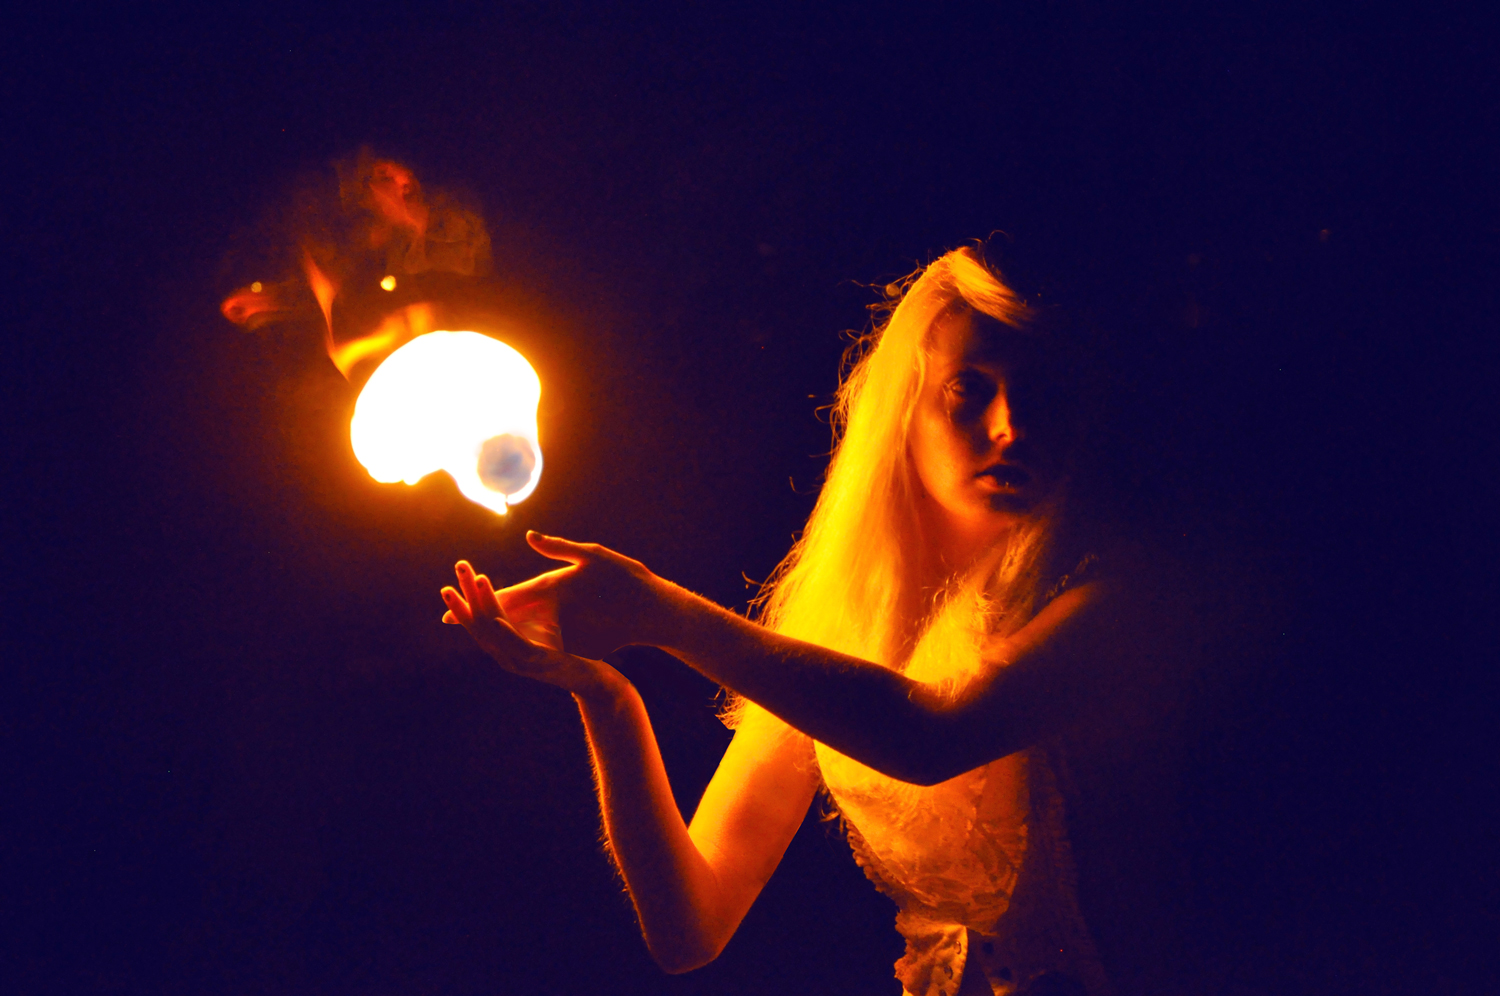 Chiaroscuro-Light-Fire-Darkness_Carly-Carpenter.jpg